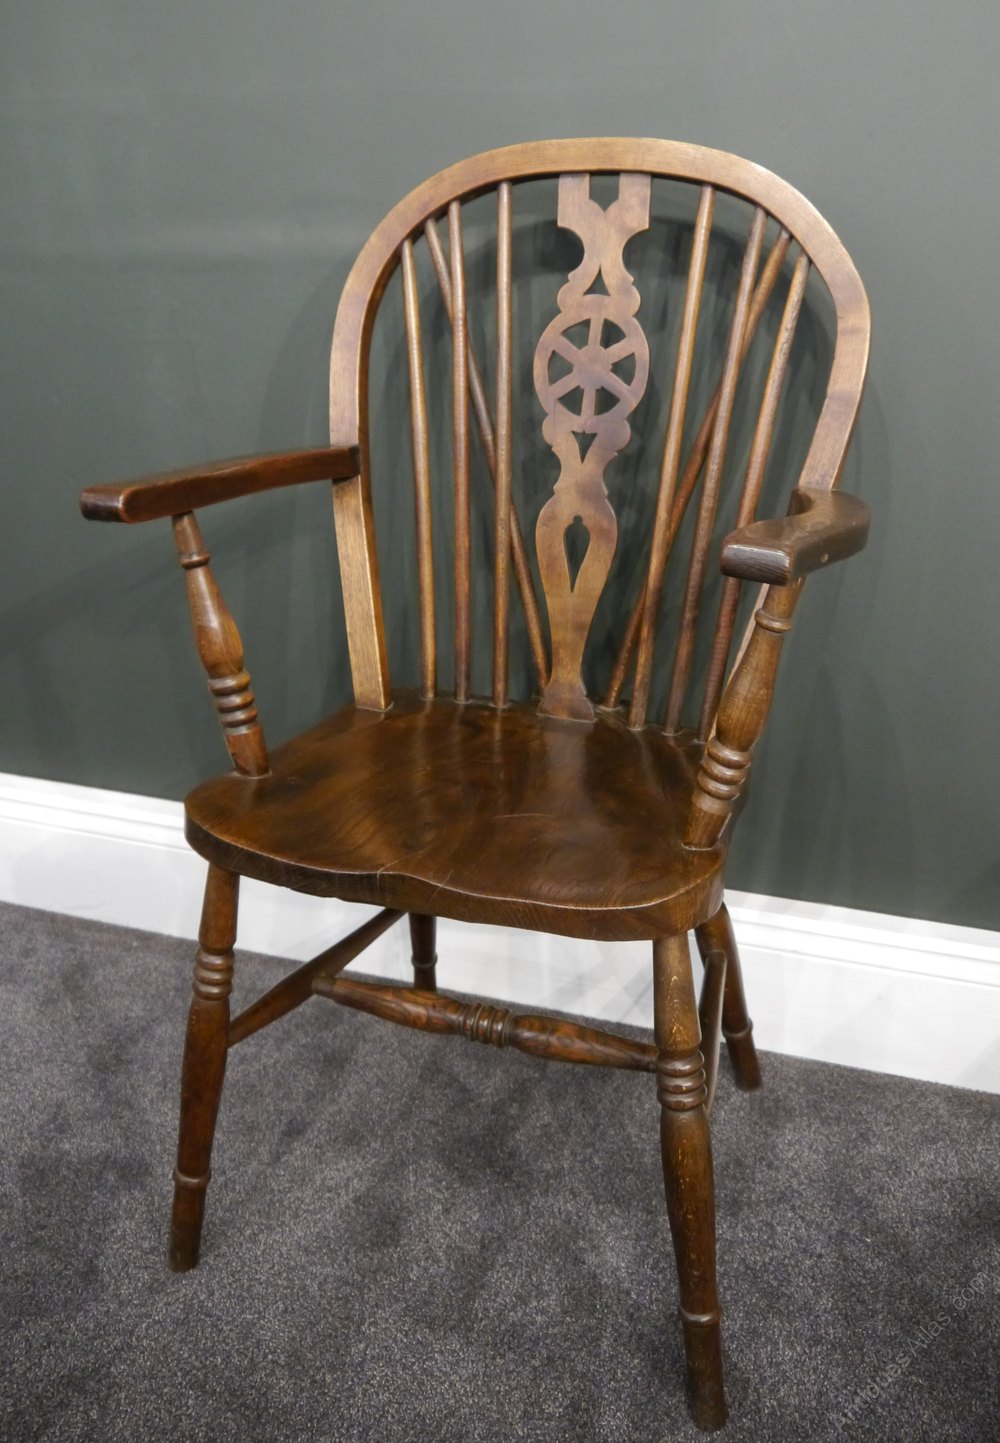 wheel chair for sale valet stand pair of oak windsor chairs - antiques atlas